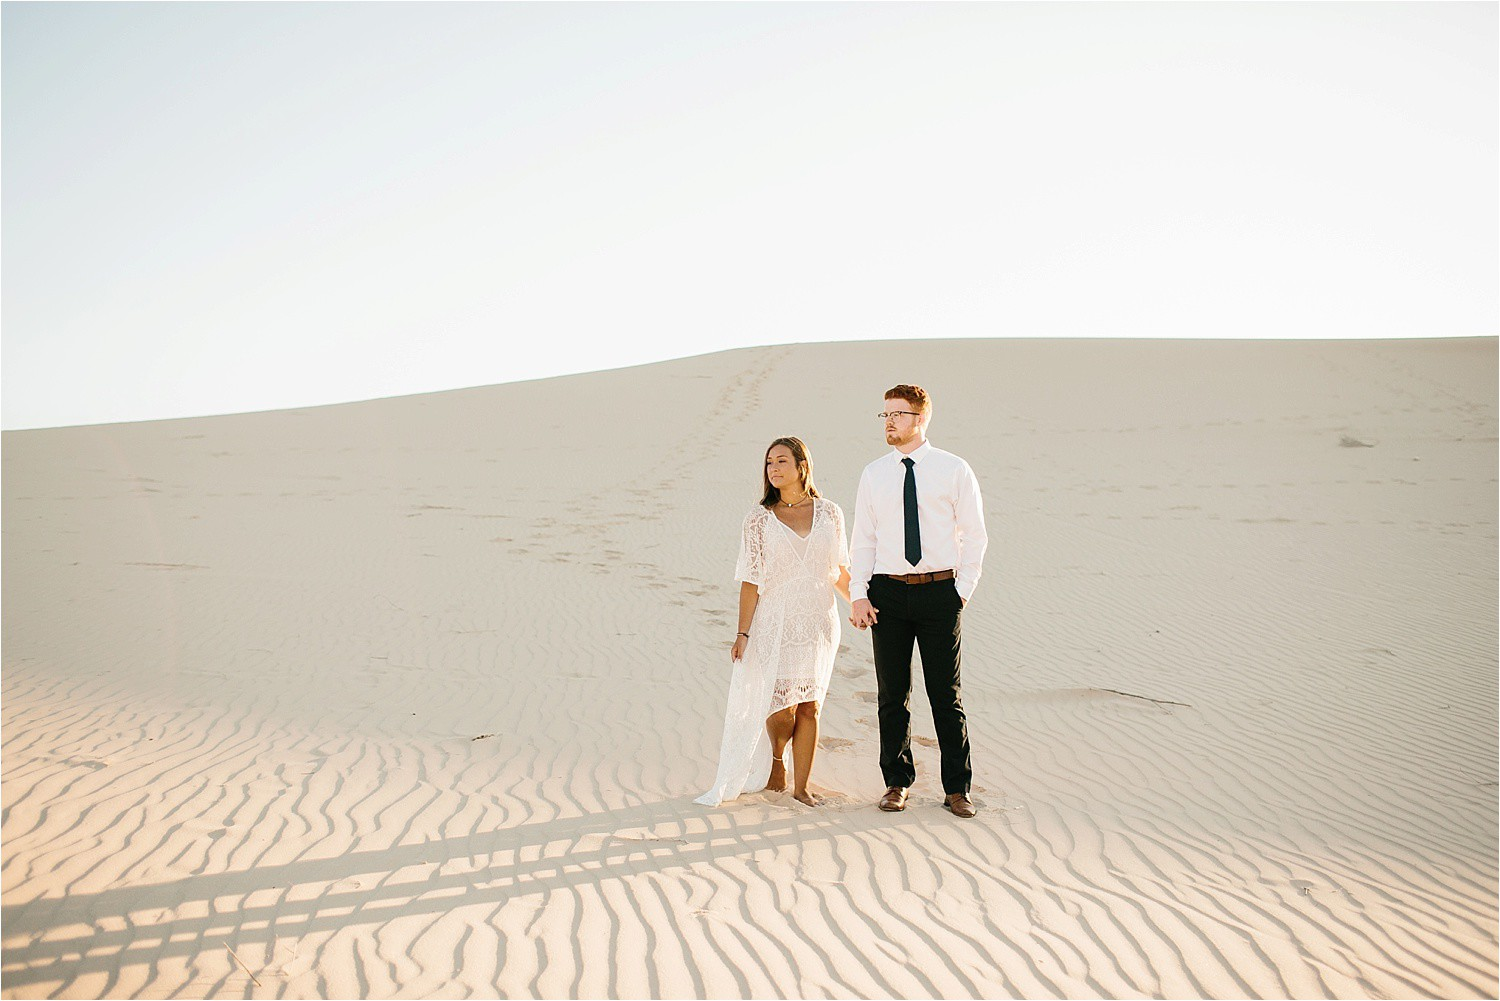 Lauren + Jacob __ a monahans sand dunes engagement session at sunrise by North Texas Wedding Photographer, Rachel Meagan Photography __ 30